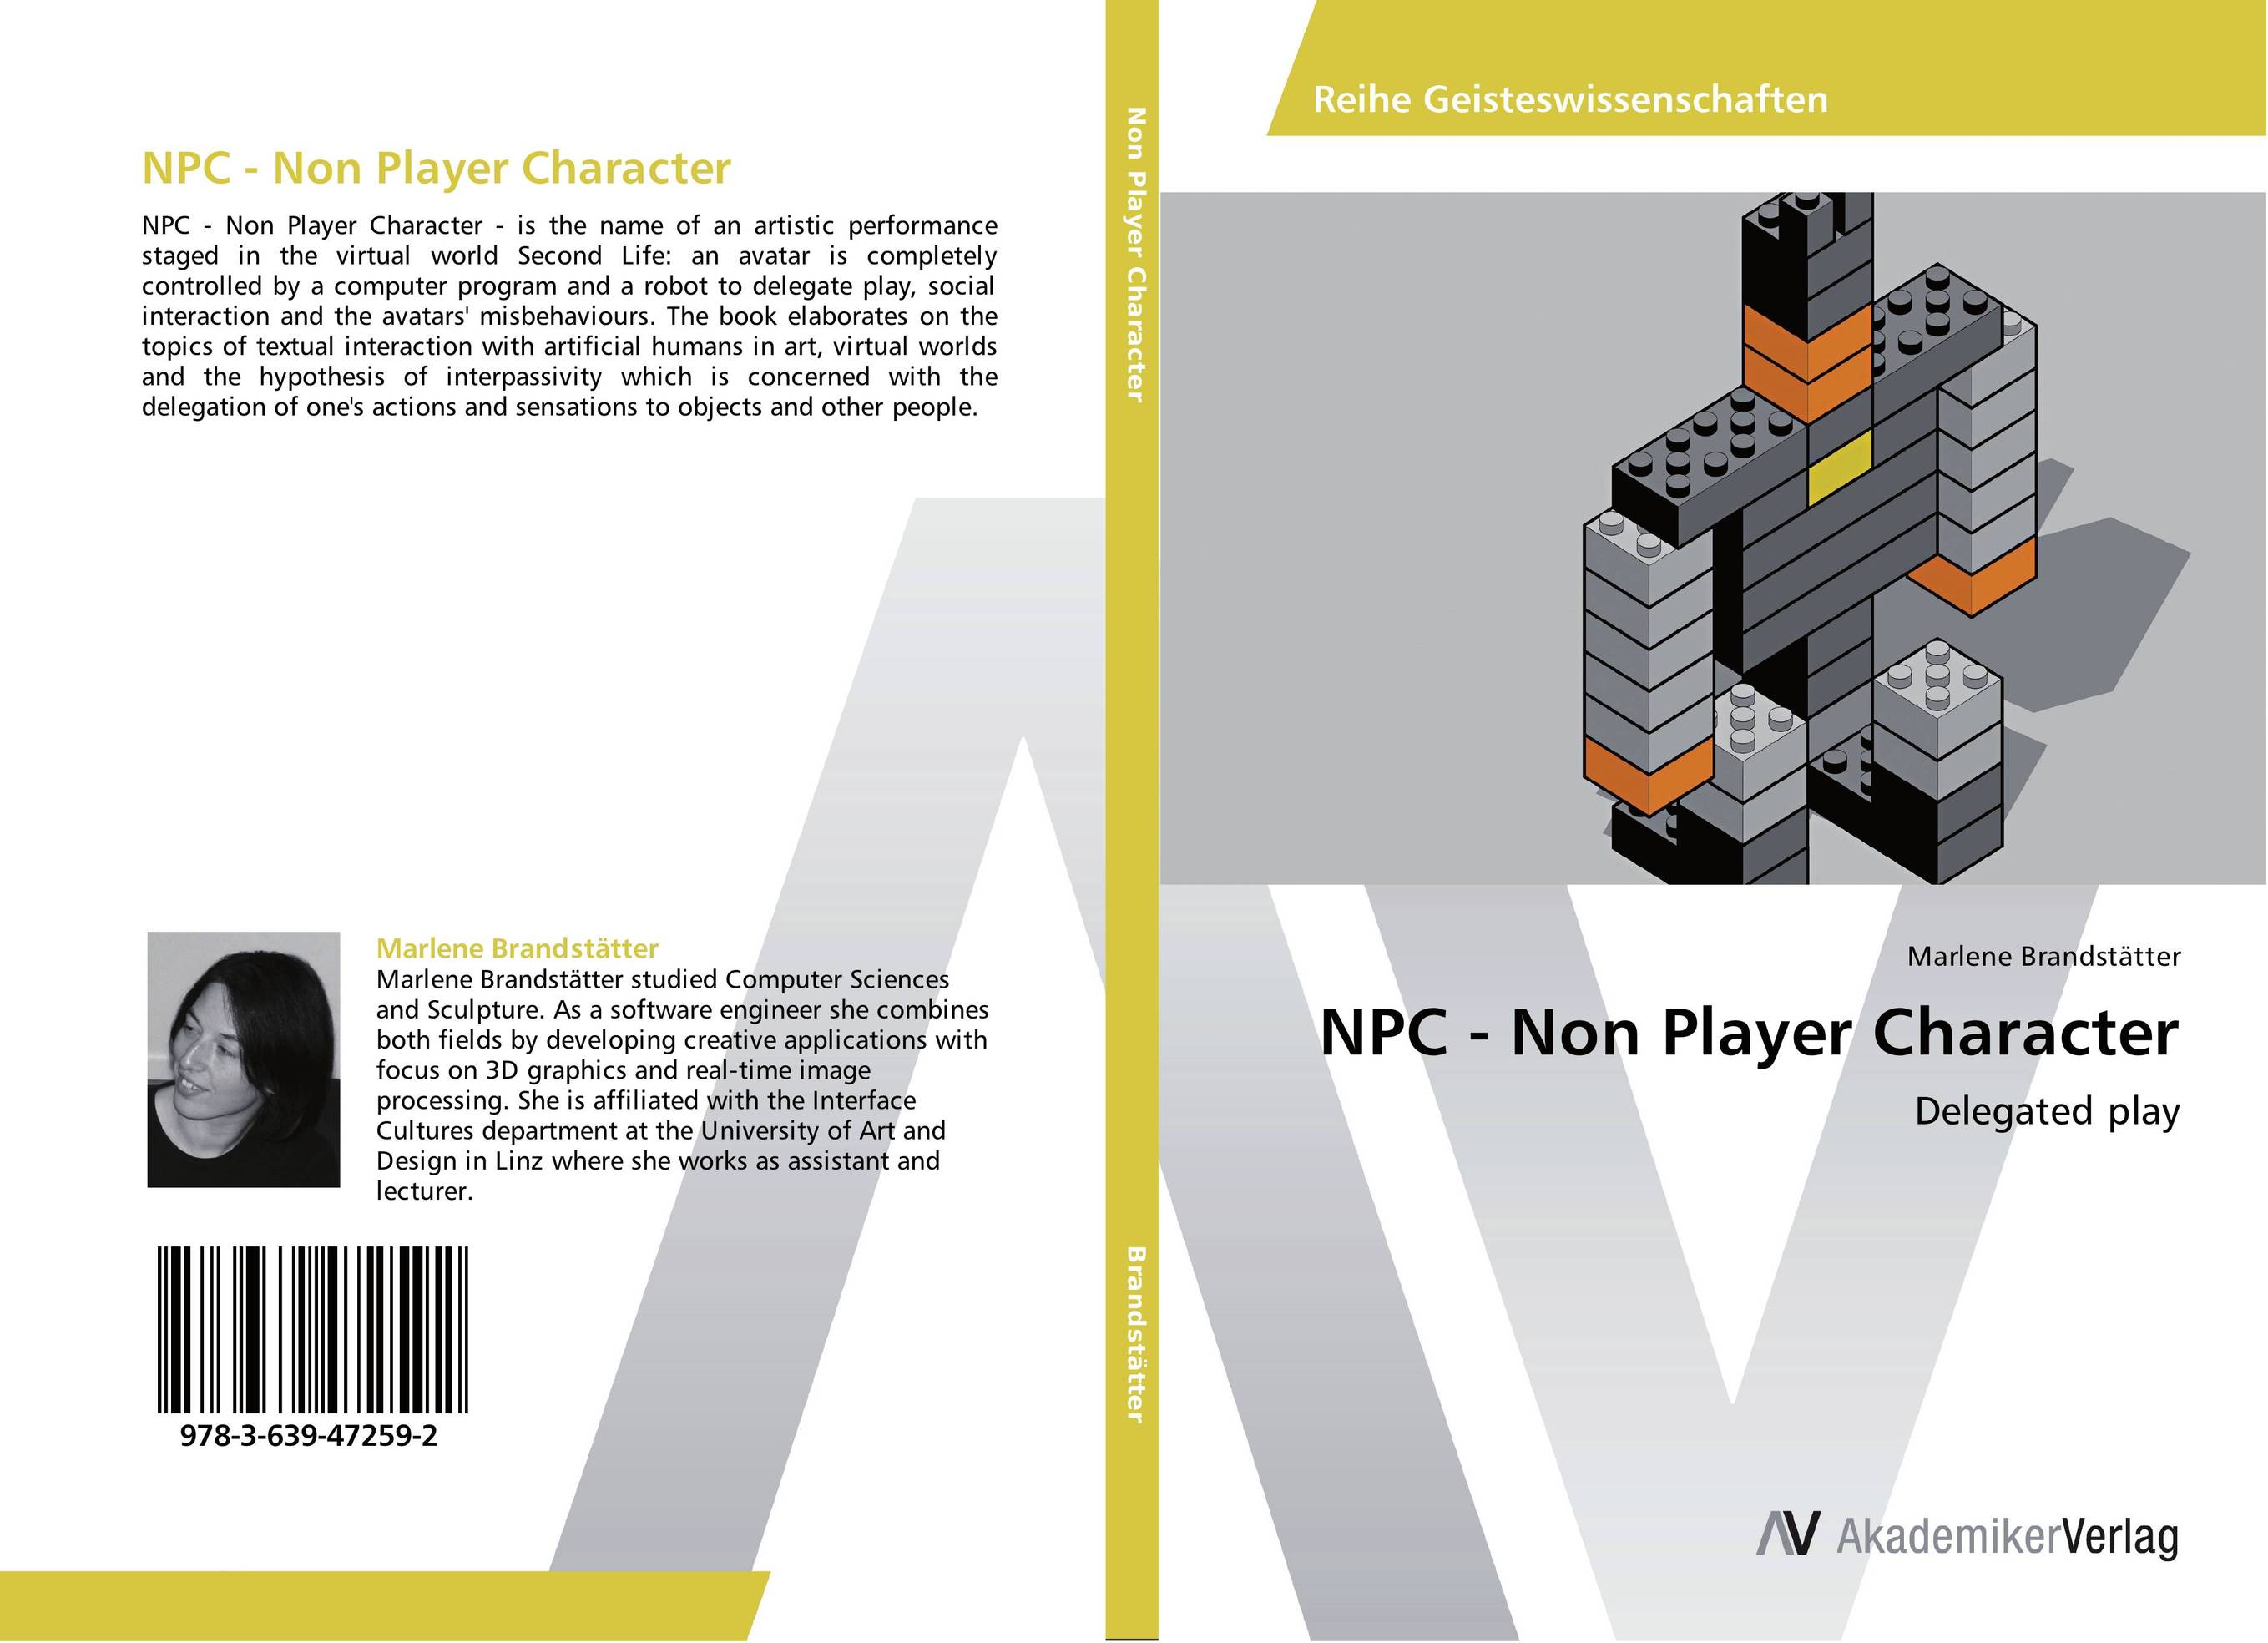 NPC - Non Player Character